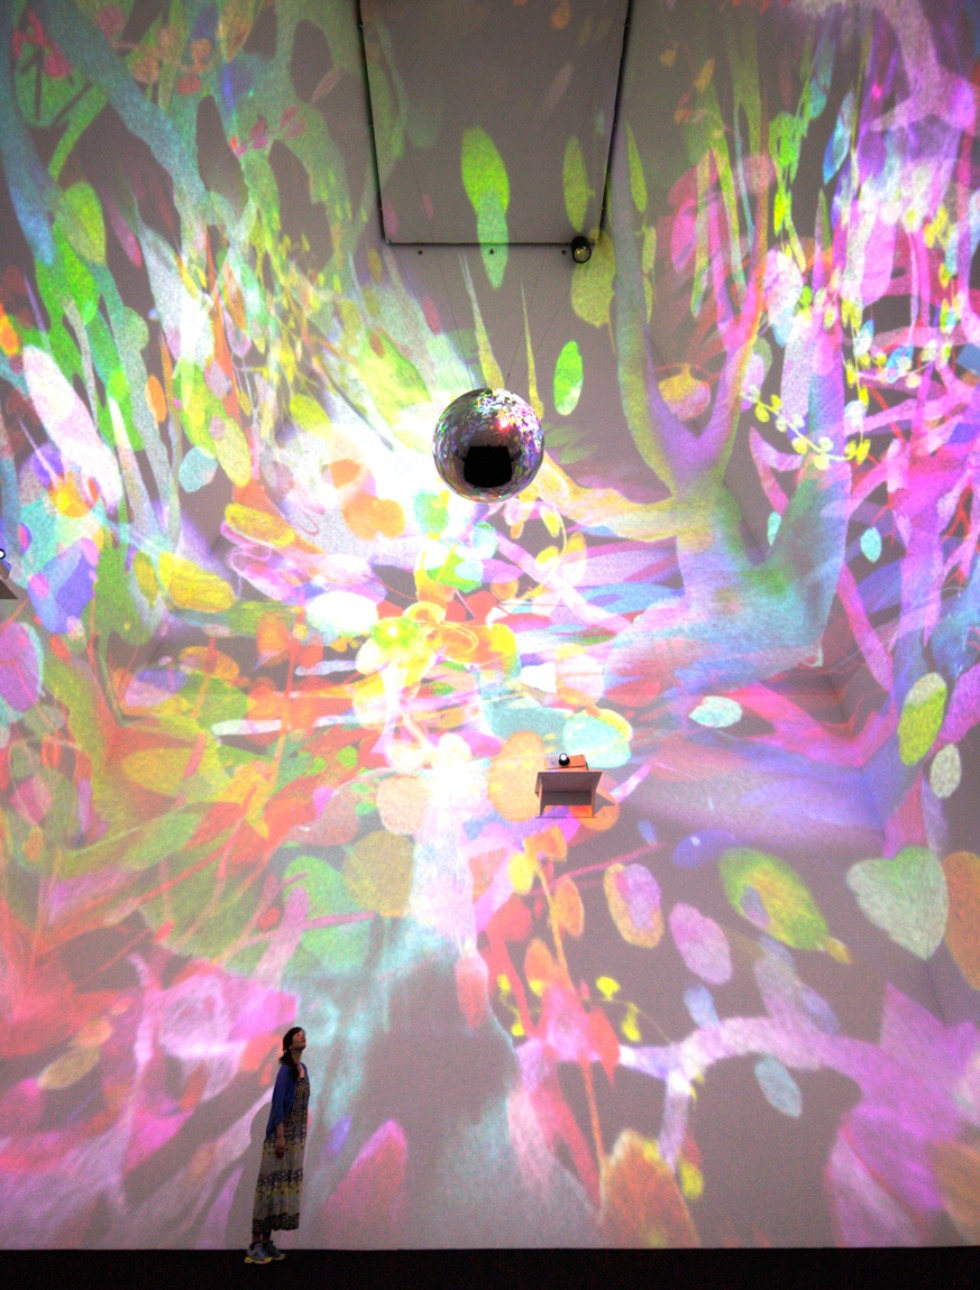 &laquo;sora&raquo; 2013, Animation, Mirrorball, Contemporary Art Gallery, Art Tower Mito, Ibaraki